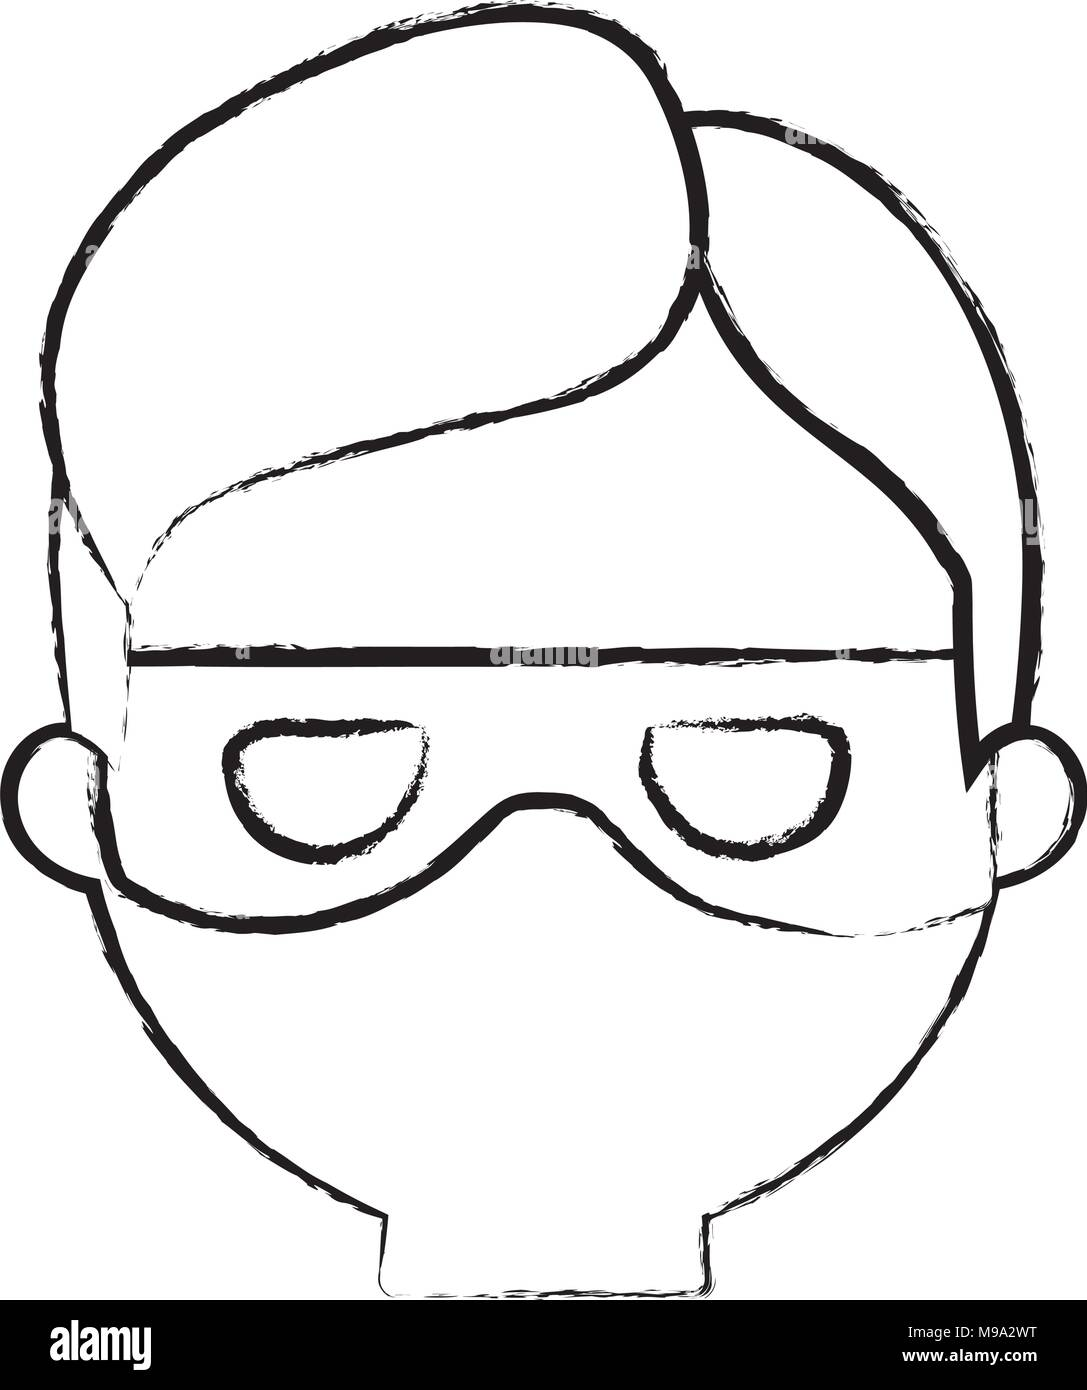 sketch of cartoon thief face icon over white background, vector illustration - Stock Image